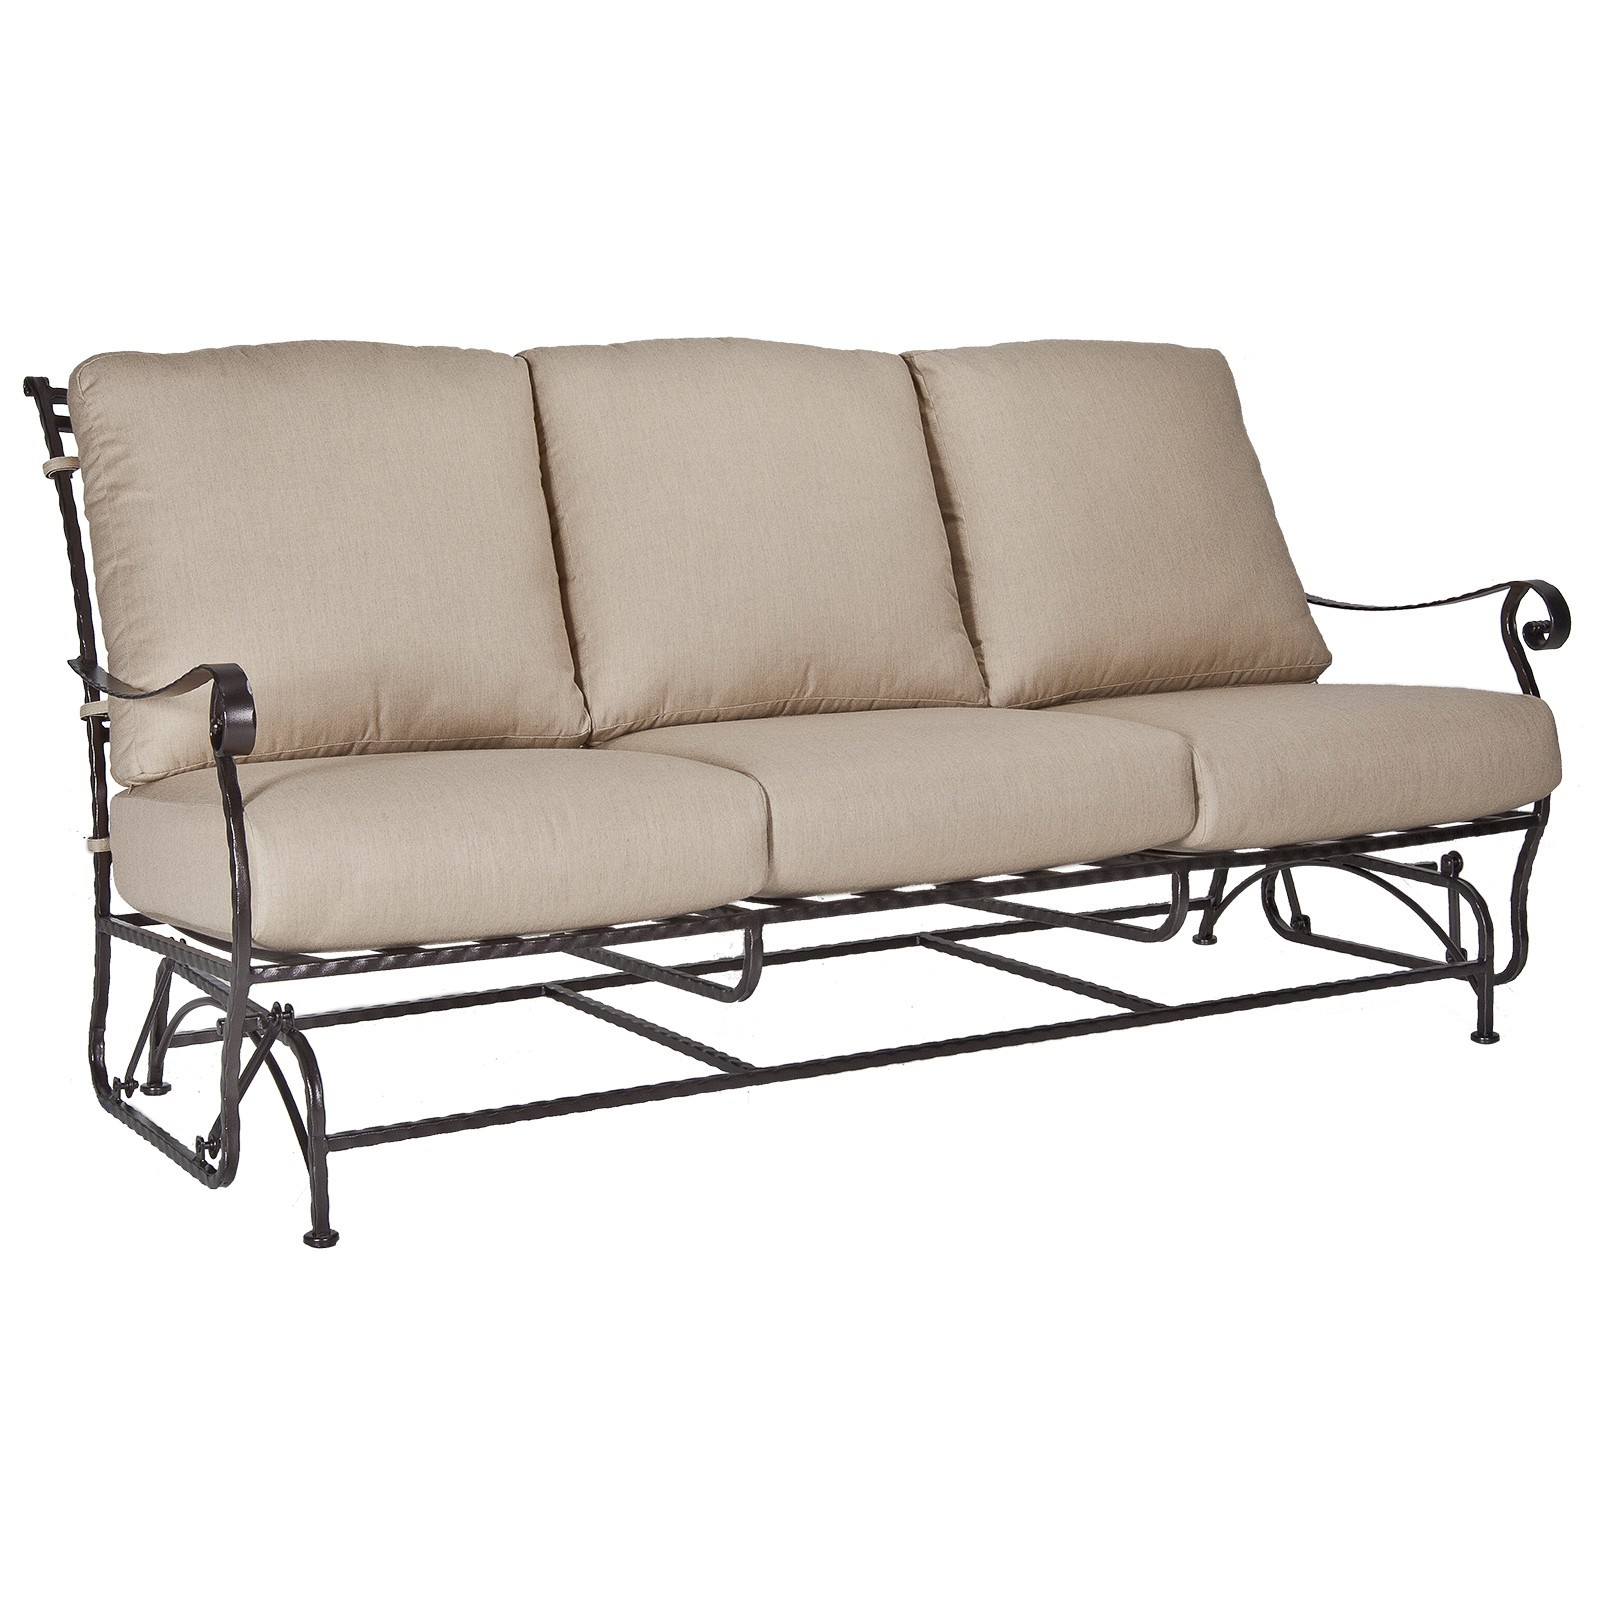 What Is Sofa In Spanish San Cristobal Sofa Glider